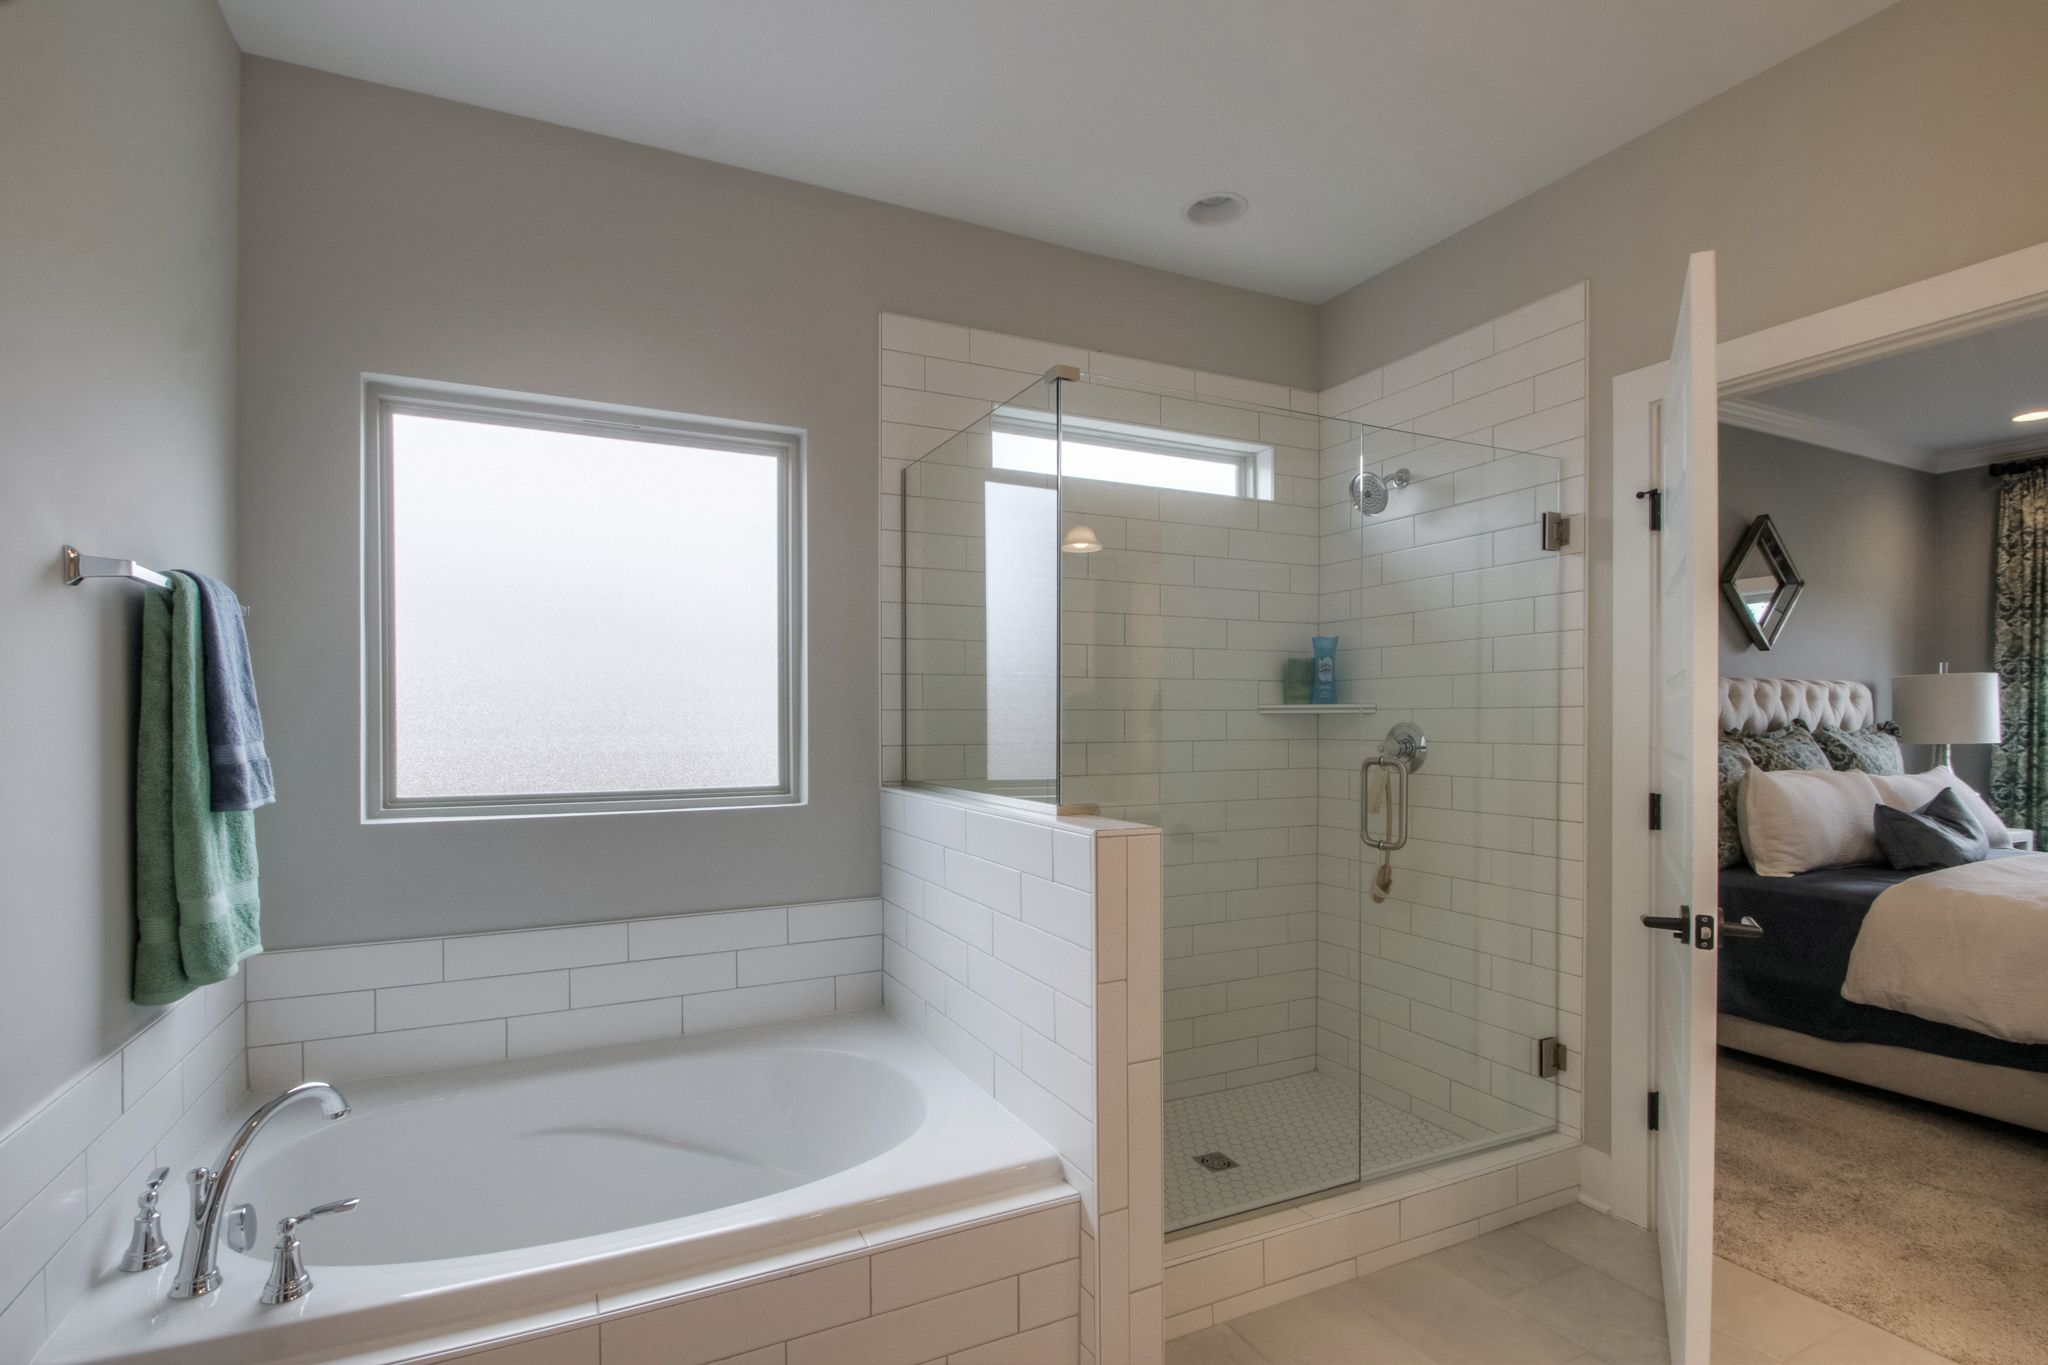 Bathroom featured in The Wellington By Goodall Homes in Owensboro, KY